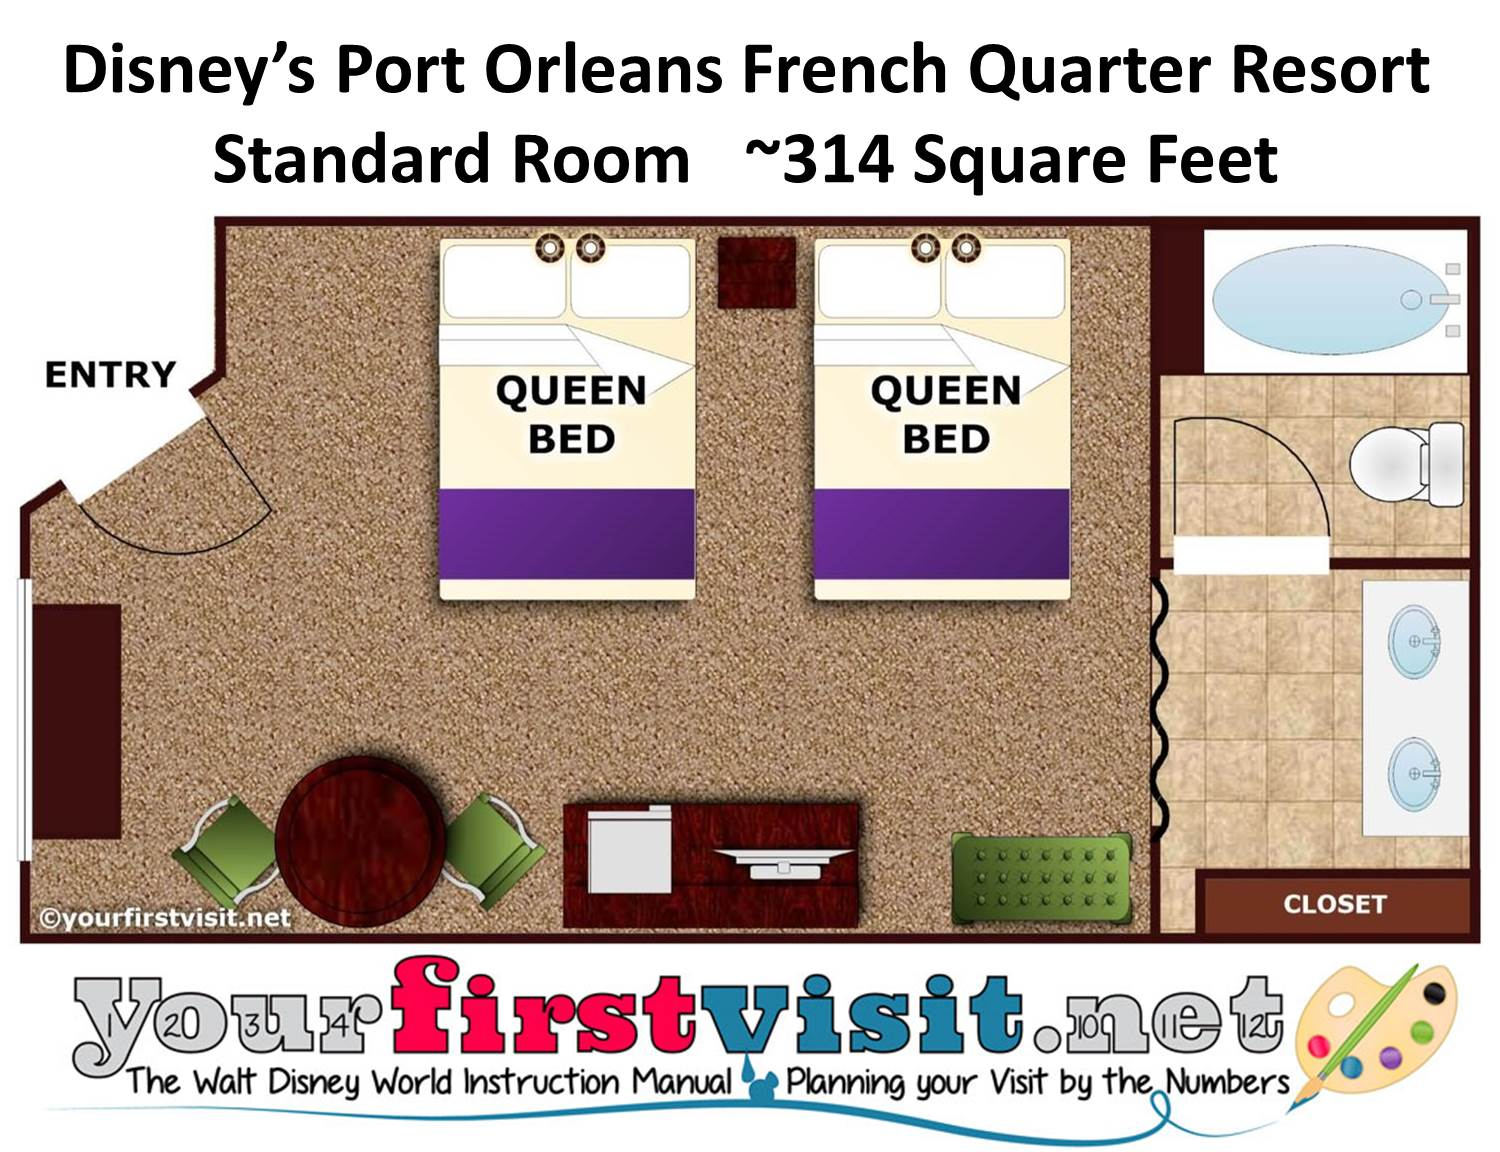 Disney's Port Orleans French Quarter Resort Floor Plan from yourfirstvisit.net